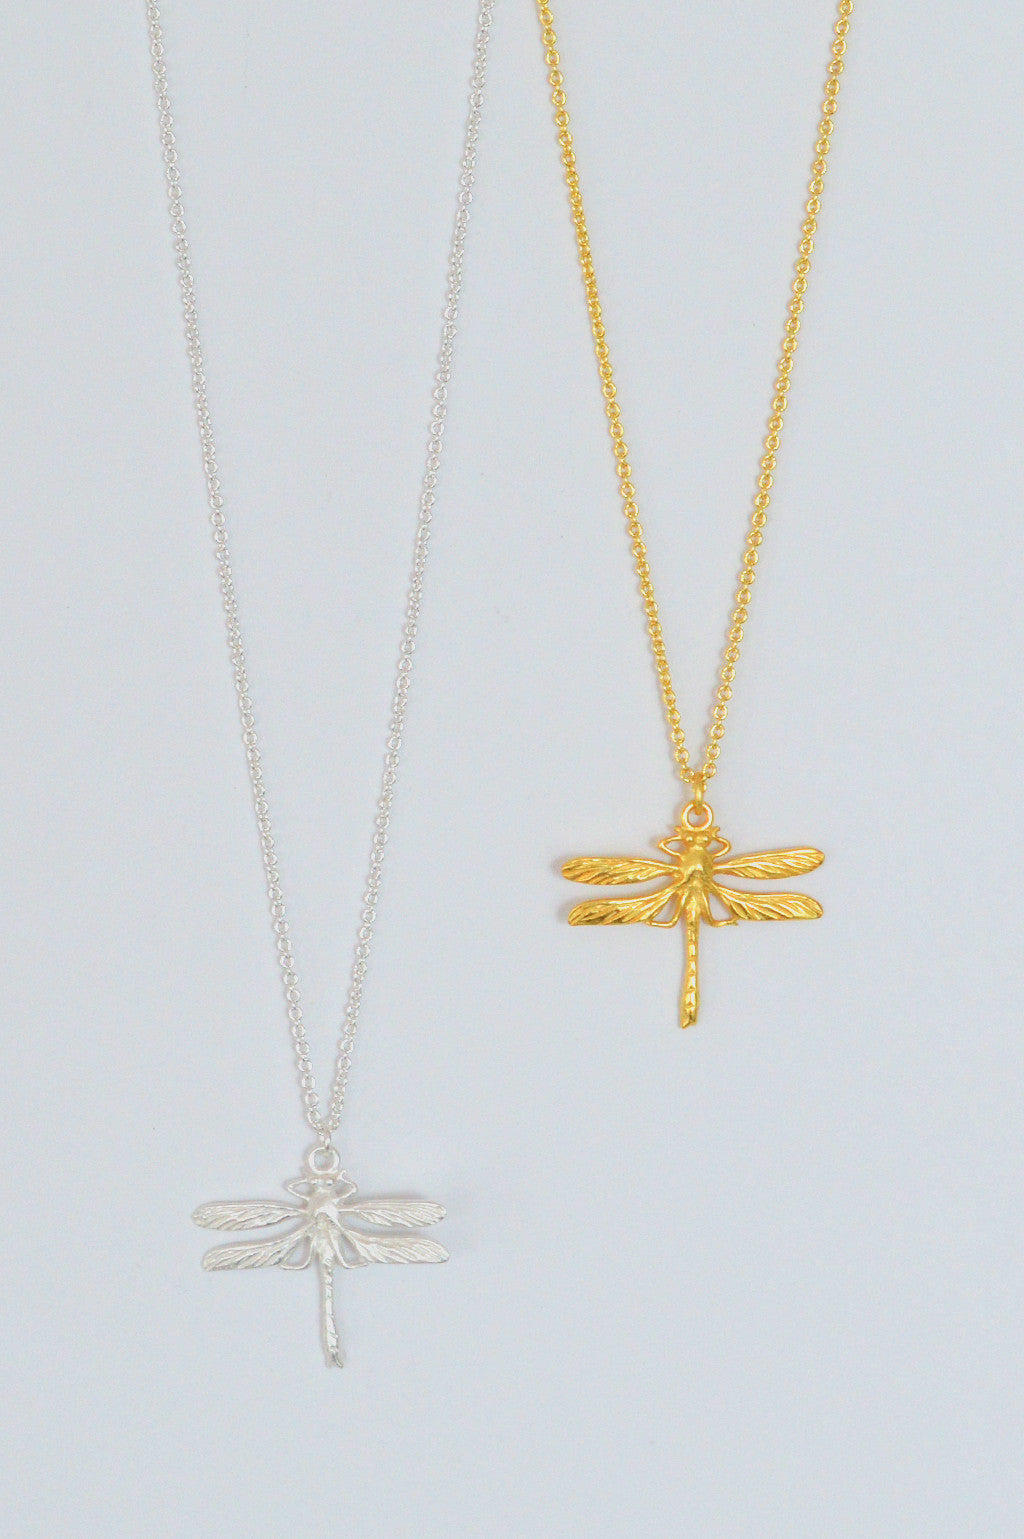 beck and boosh beck & boosh dragonfly pendant necklace delicate chain with beautiful dragonfly pendant made of pure brass comes in gold and silver